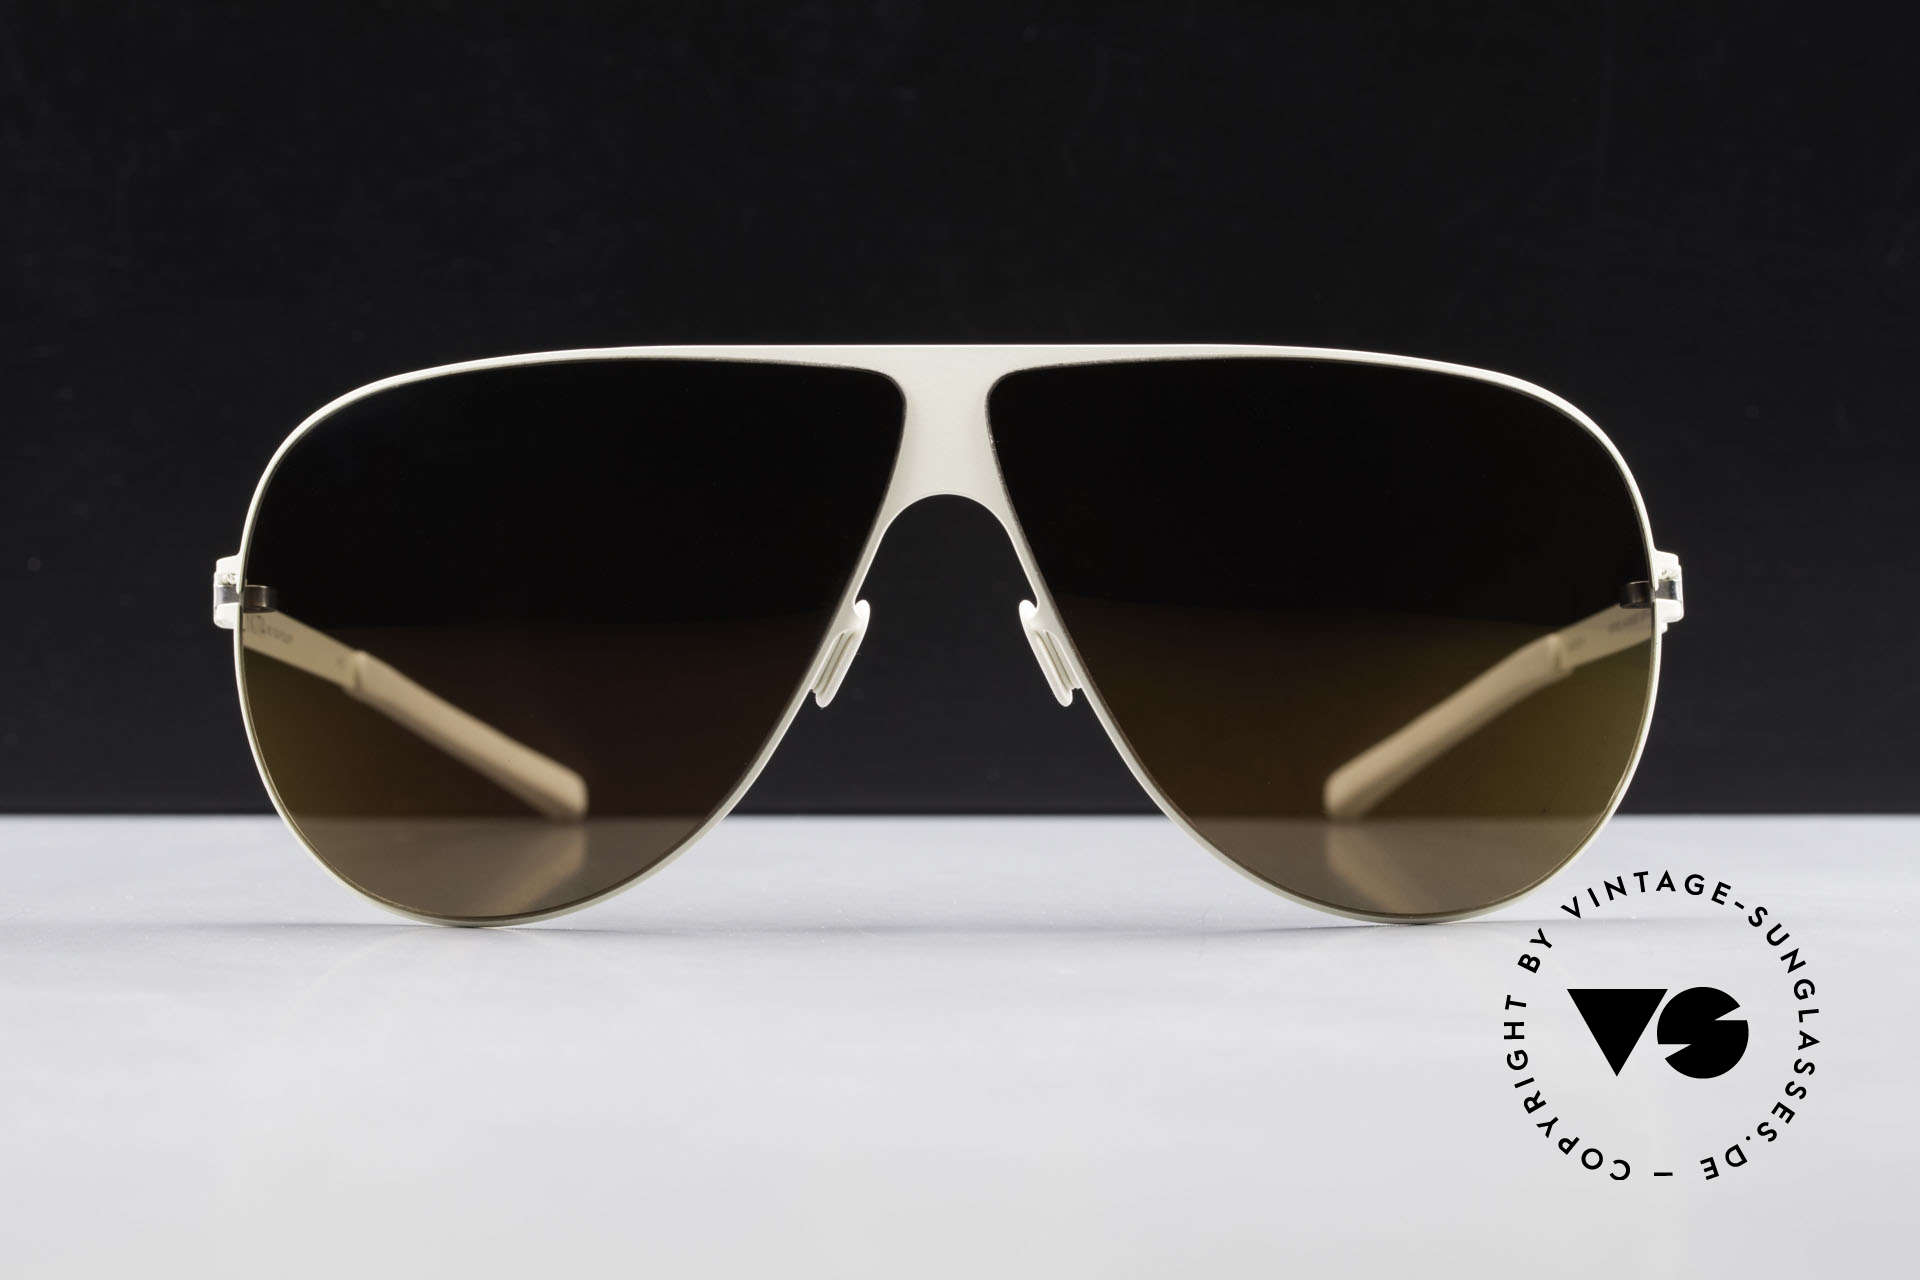 Mykita Elliot Tom Cruise Mykita Sunglasses, innovative and flexible metal frame = One size fits all!, Made for Men